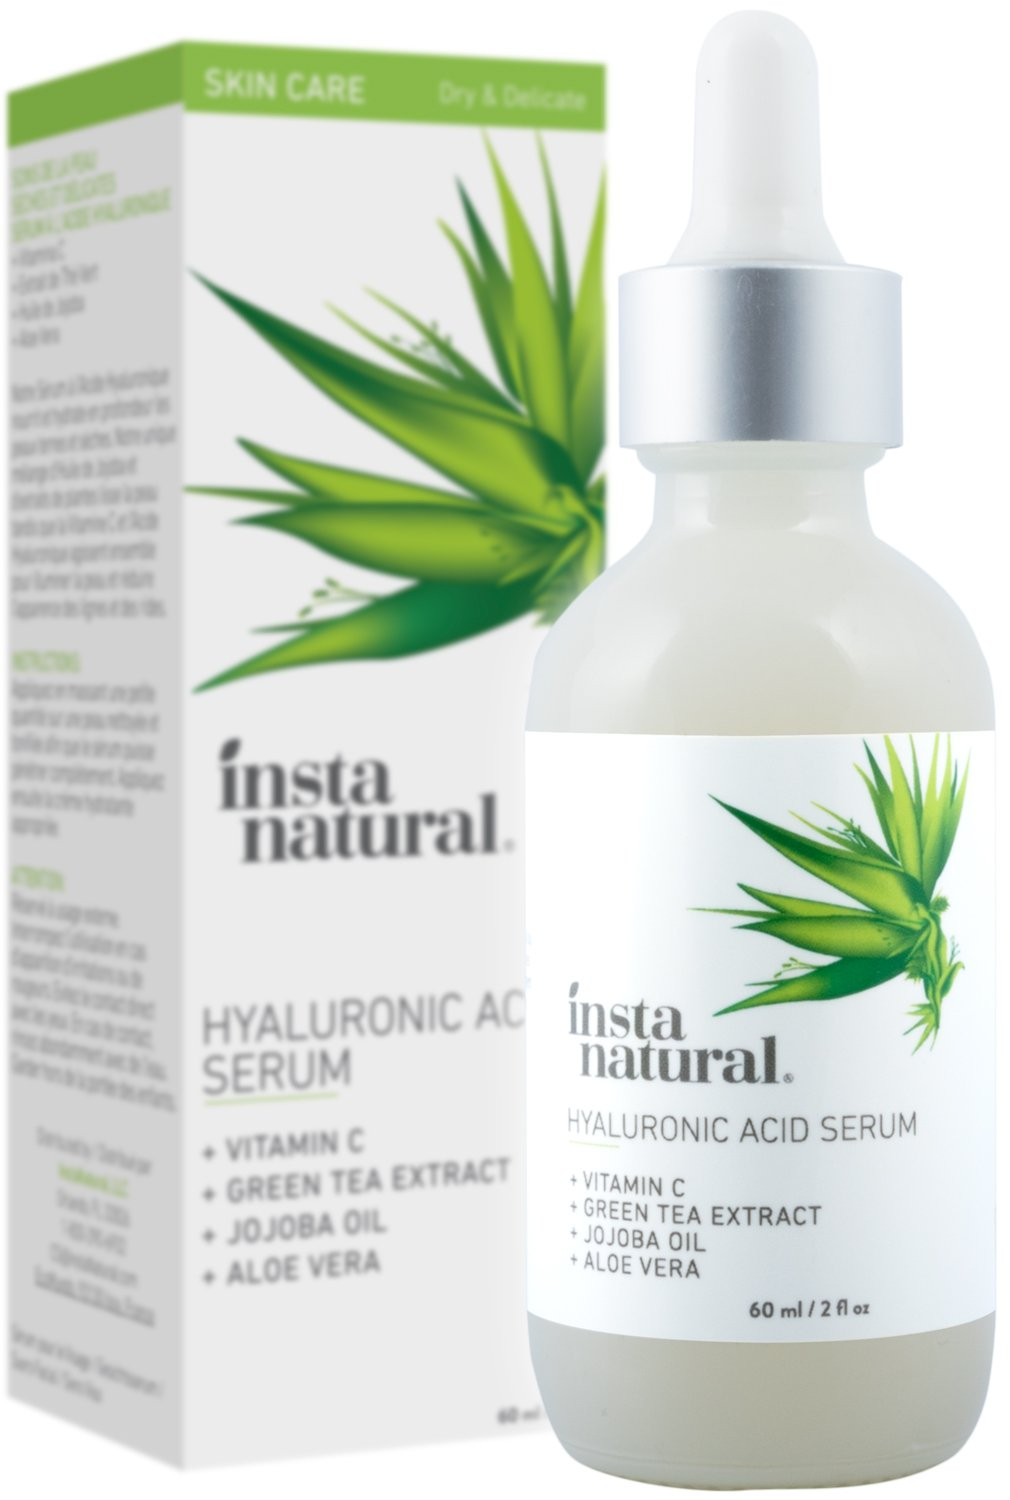 InstaNatural - Hyaluronic Acid Serum - With Vitamin C, Organic & 100% Pure Ingredients for Dry Skin, Wrinkle, Fine Line, Eye Bag Defense - Advanced Anti Aging Moisturizer for Men & Women - 2 oz by InstaNatural